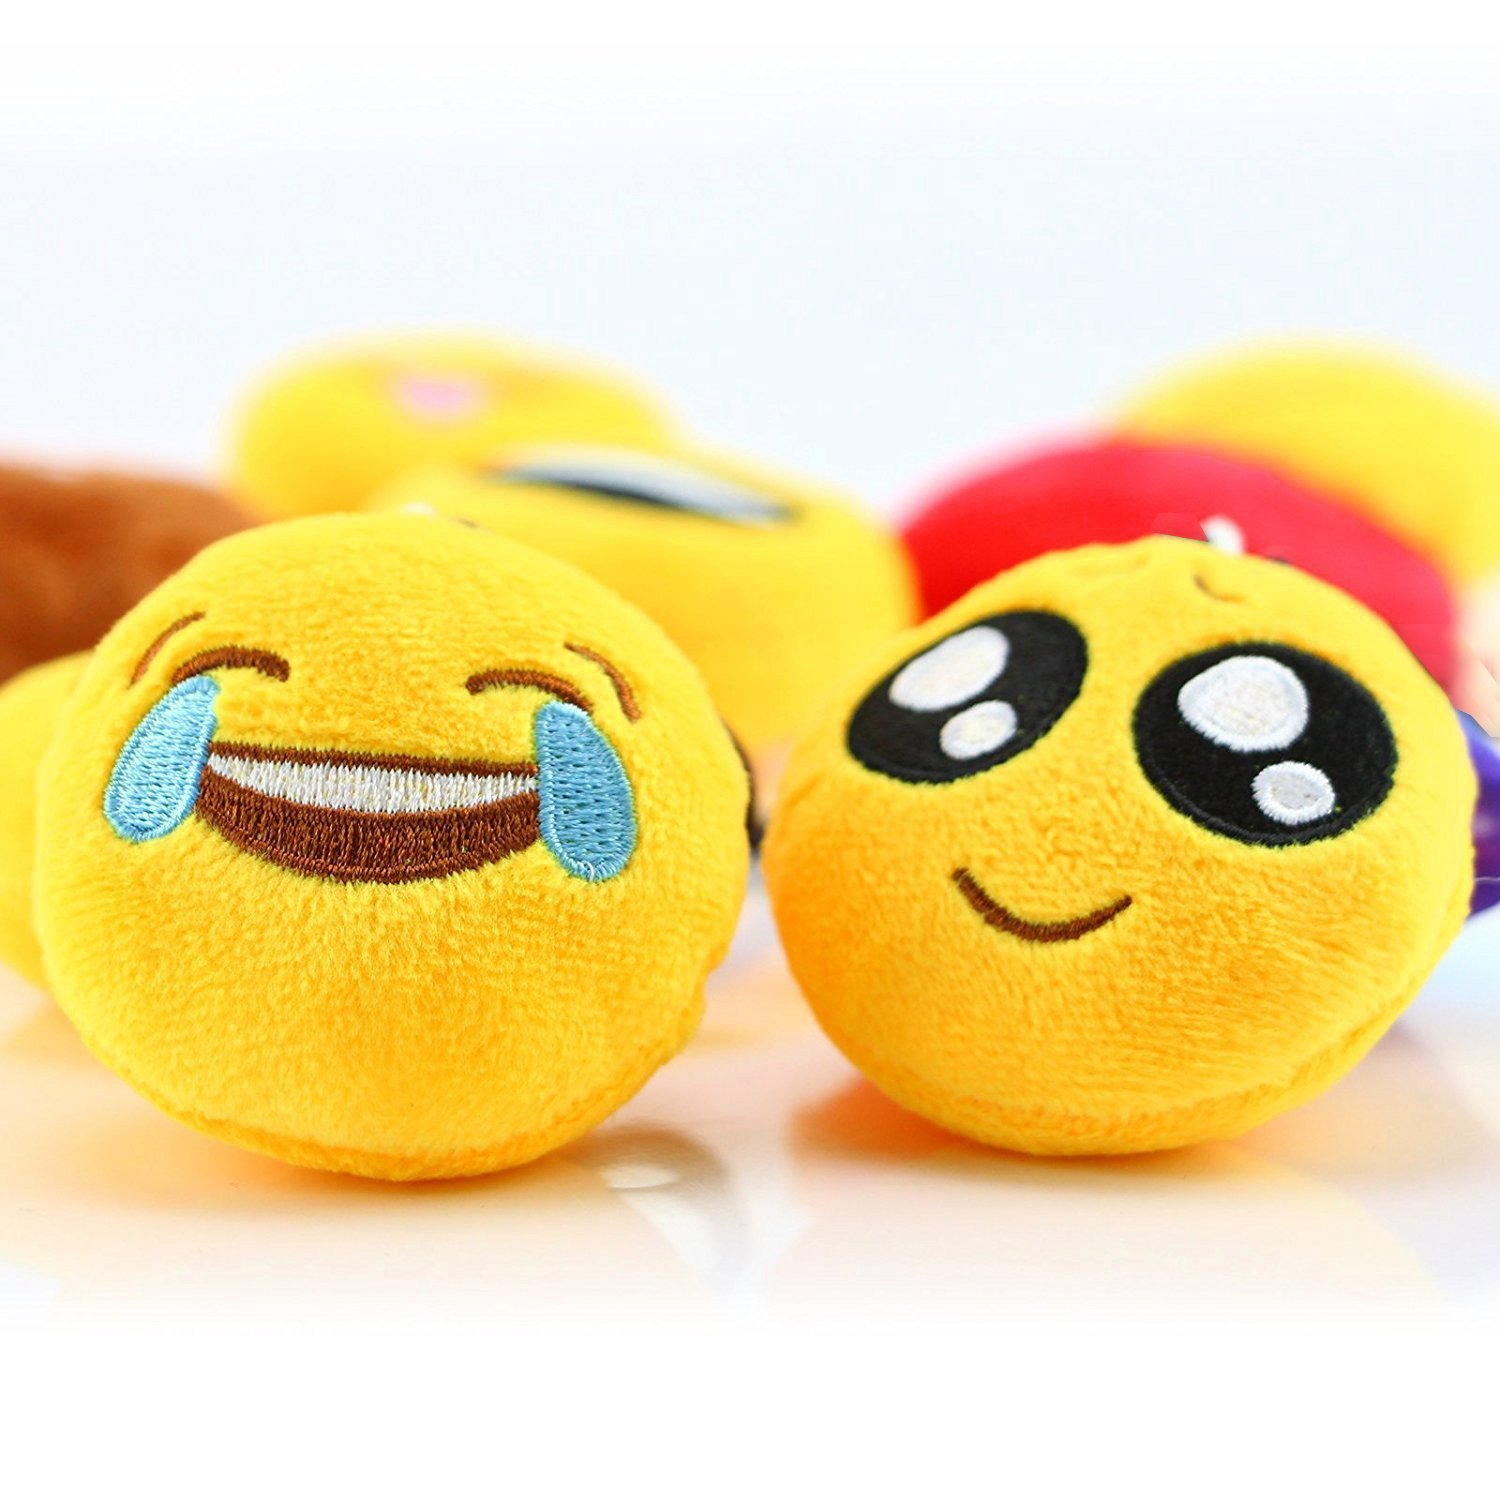 Emoji Party Supplies, Dreampark Emoji Keychain 100 Pack Mini Emoji Plush Pillows for Kids Birthday Party Favors/Easter Eggs Fillers, 2'' Set of 100 by Dreampark (Image #5)